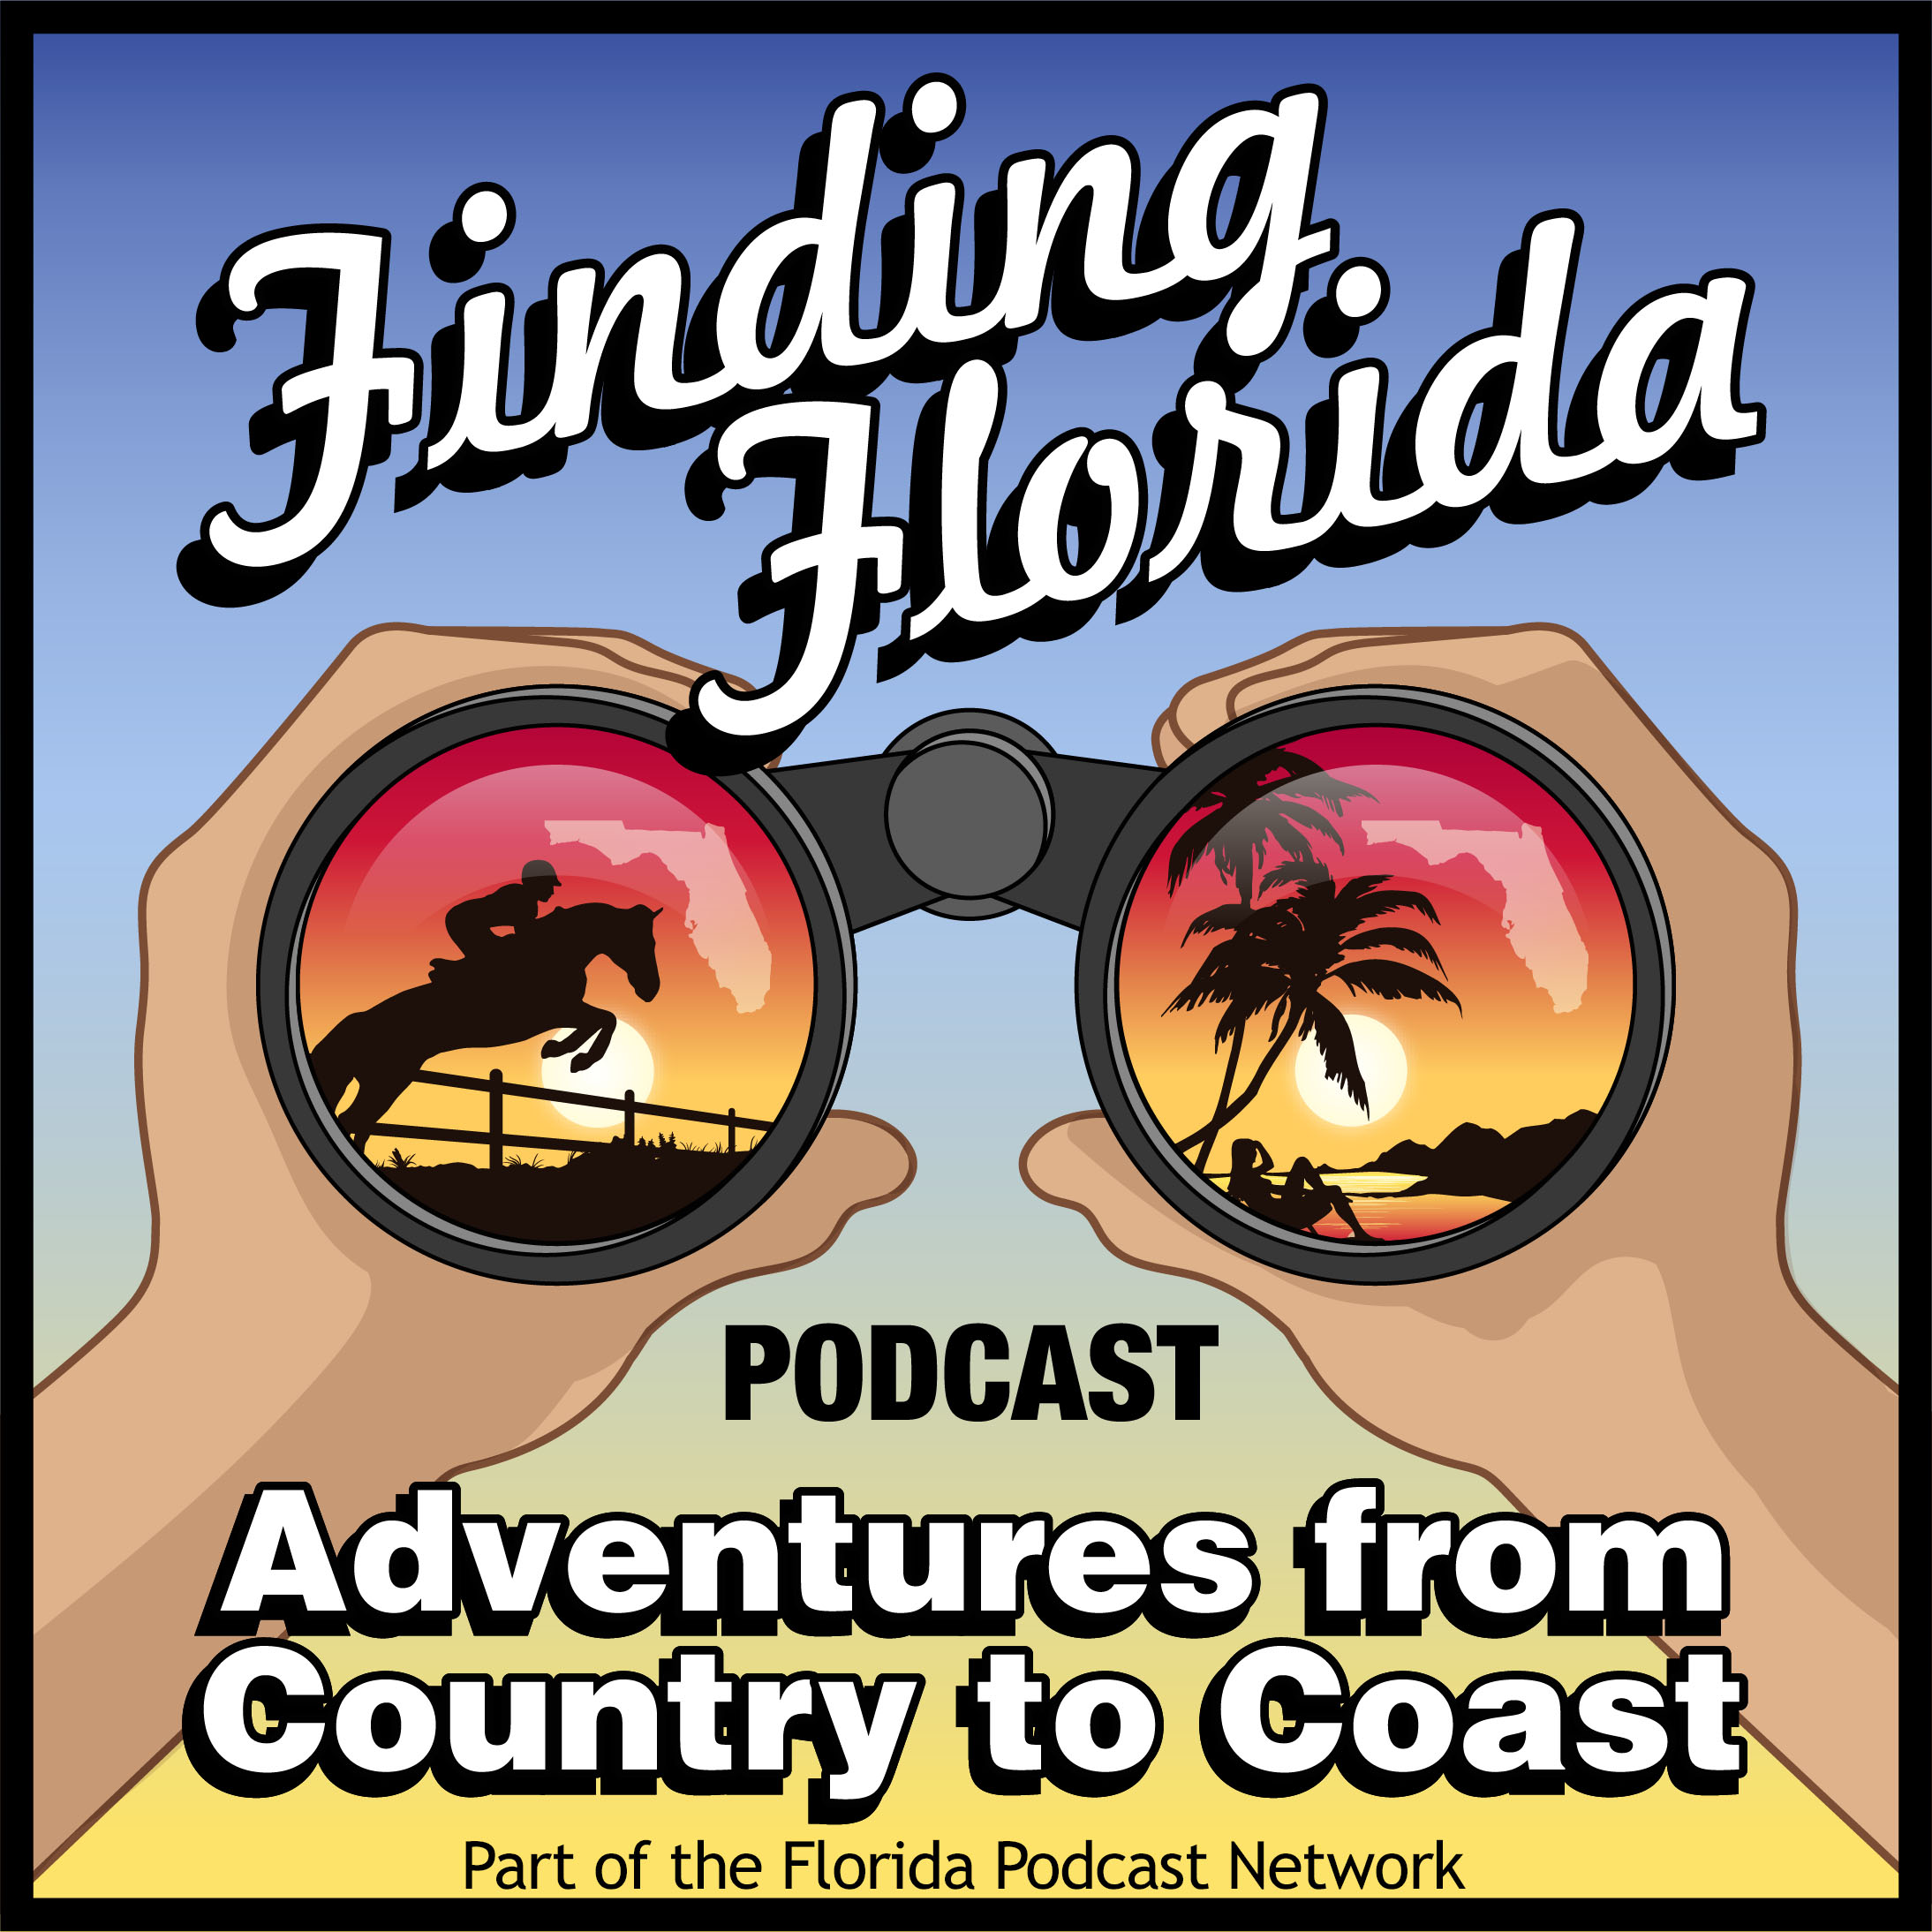 Finding Florida Podcast Has Adventures from Country to Coast show art